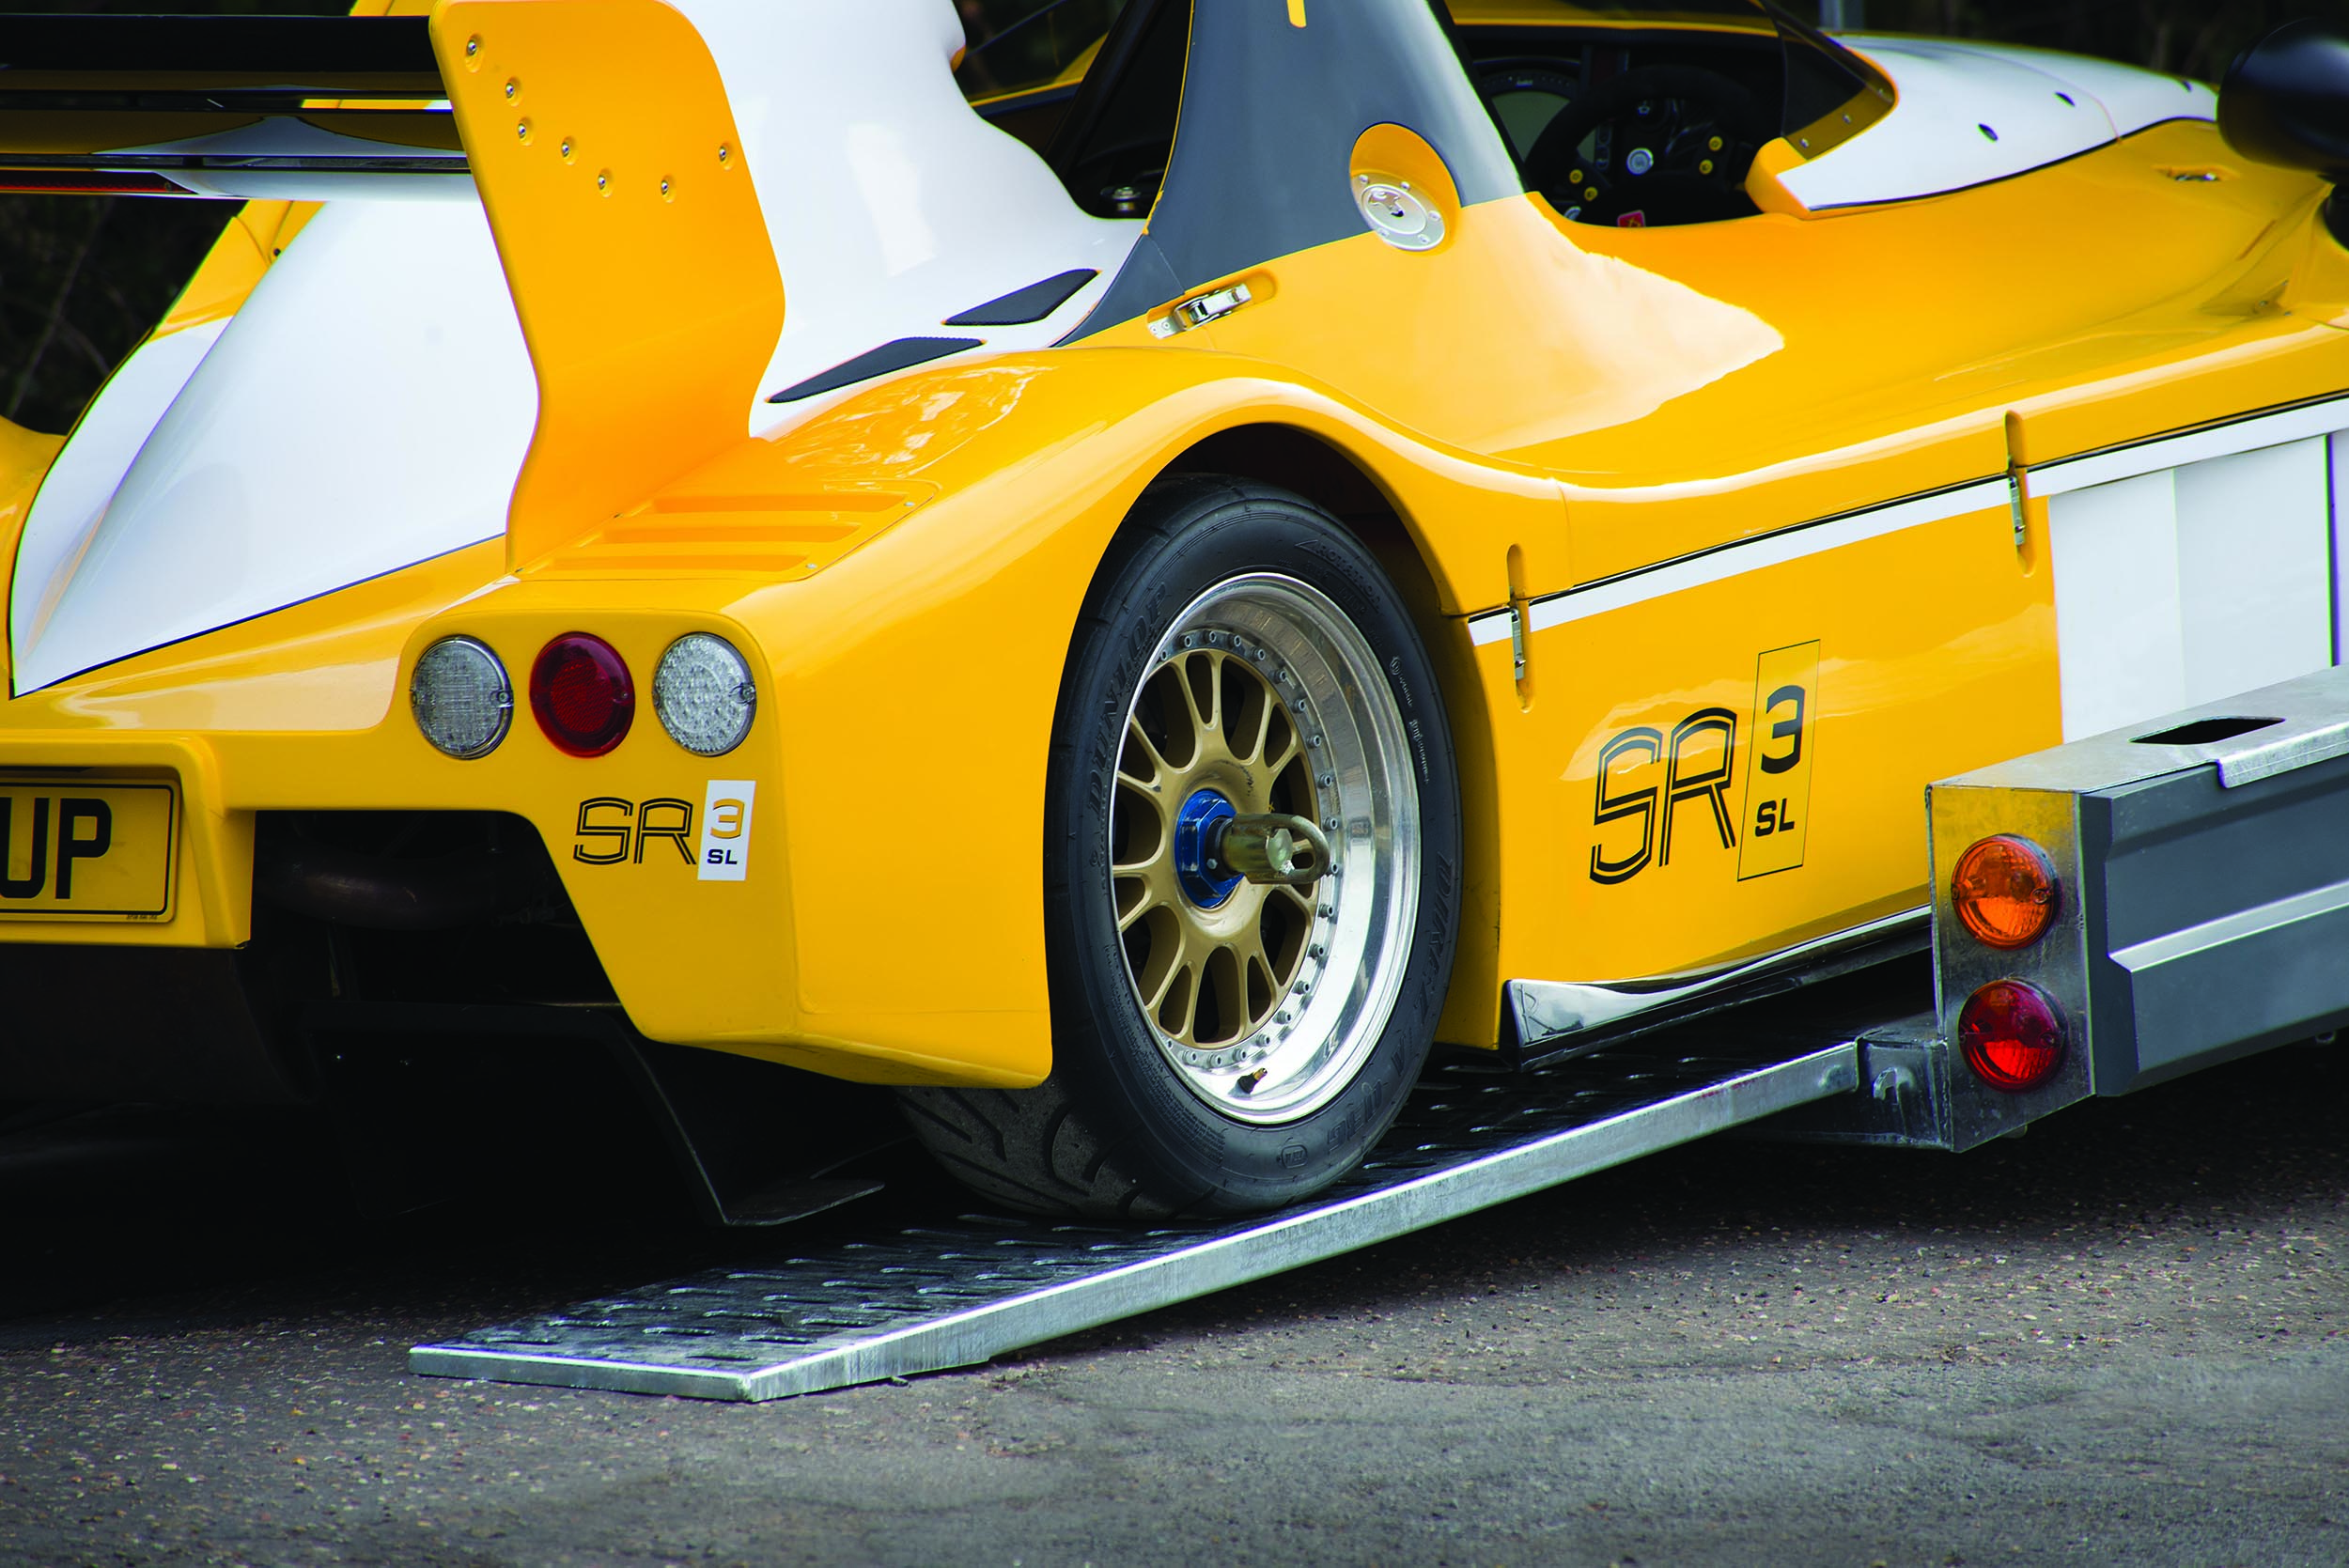 Wheel Ramps For Cars Hire